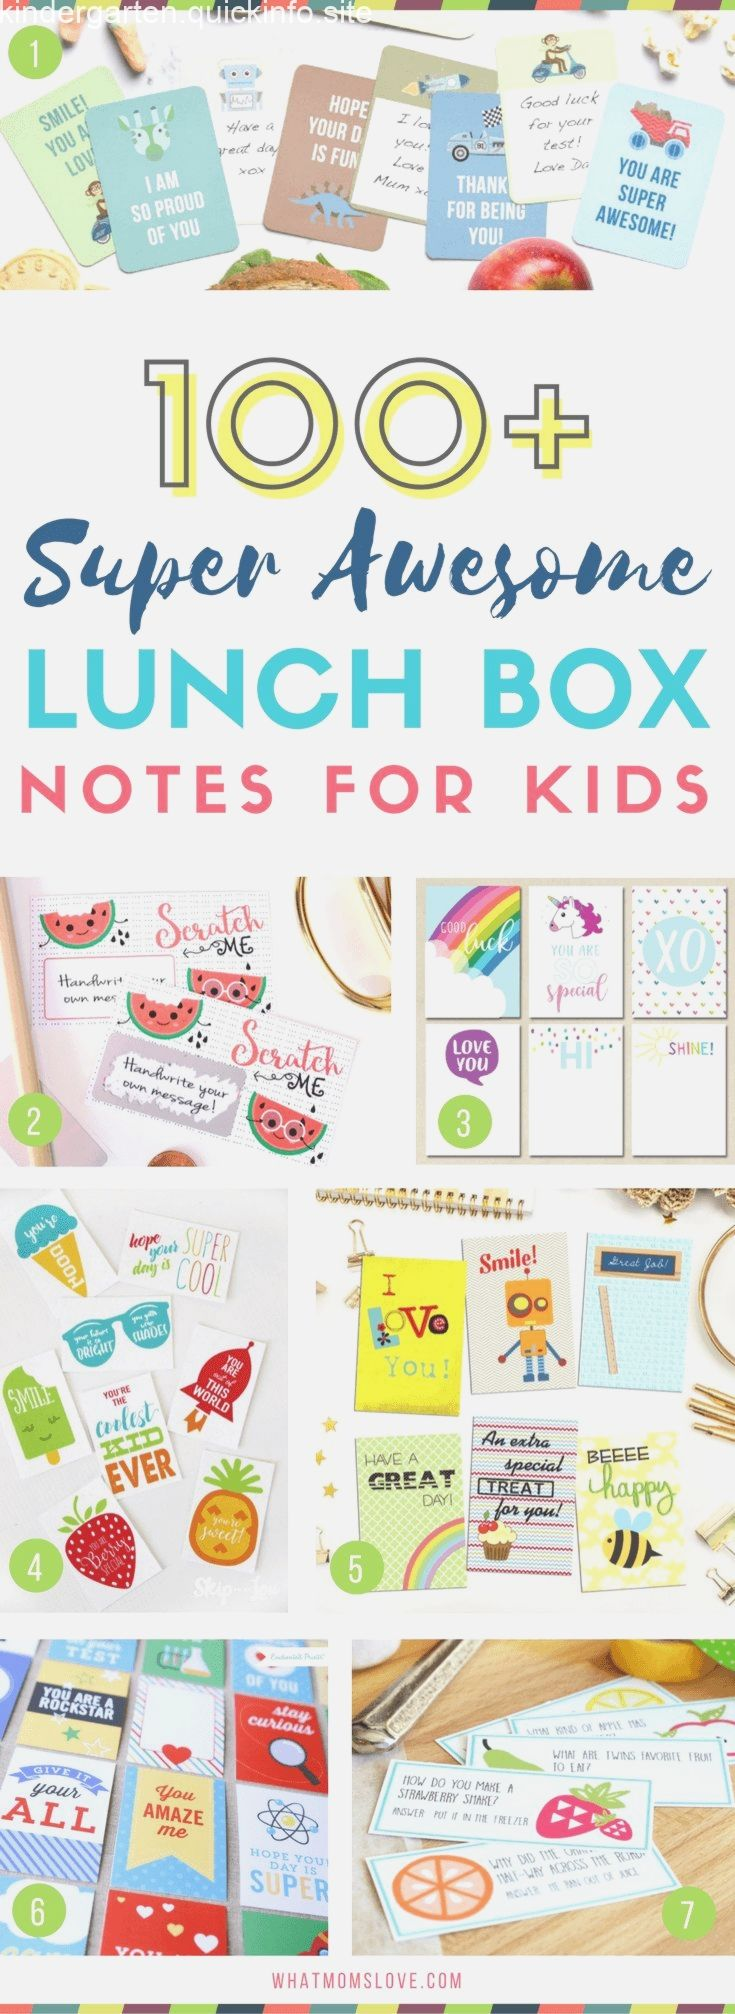 The Best Bento Boxes, Supplies & Tools To Take Your School Lunches From Boring To Blast-Off! The Best Bento Boxes, Supplies & Tools To Take Your School Lunches From Boring To Blast-Off!,